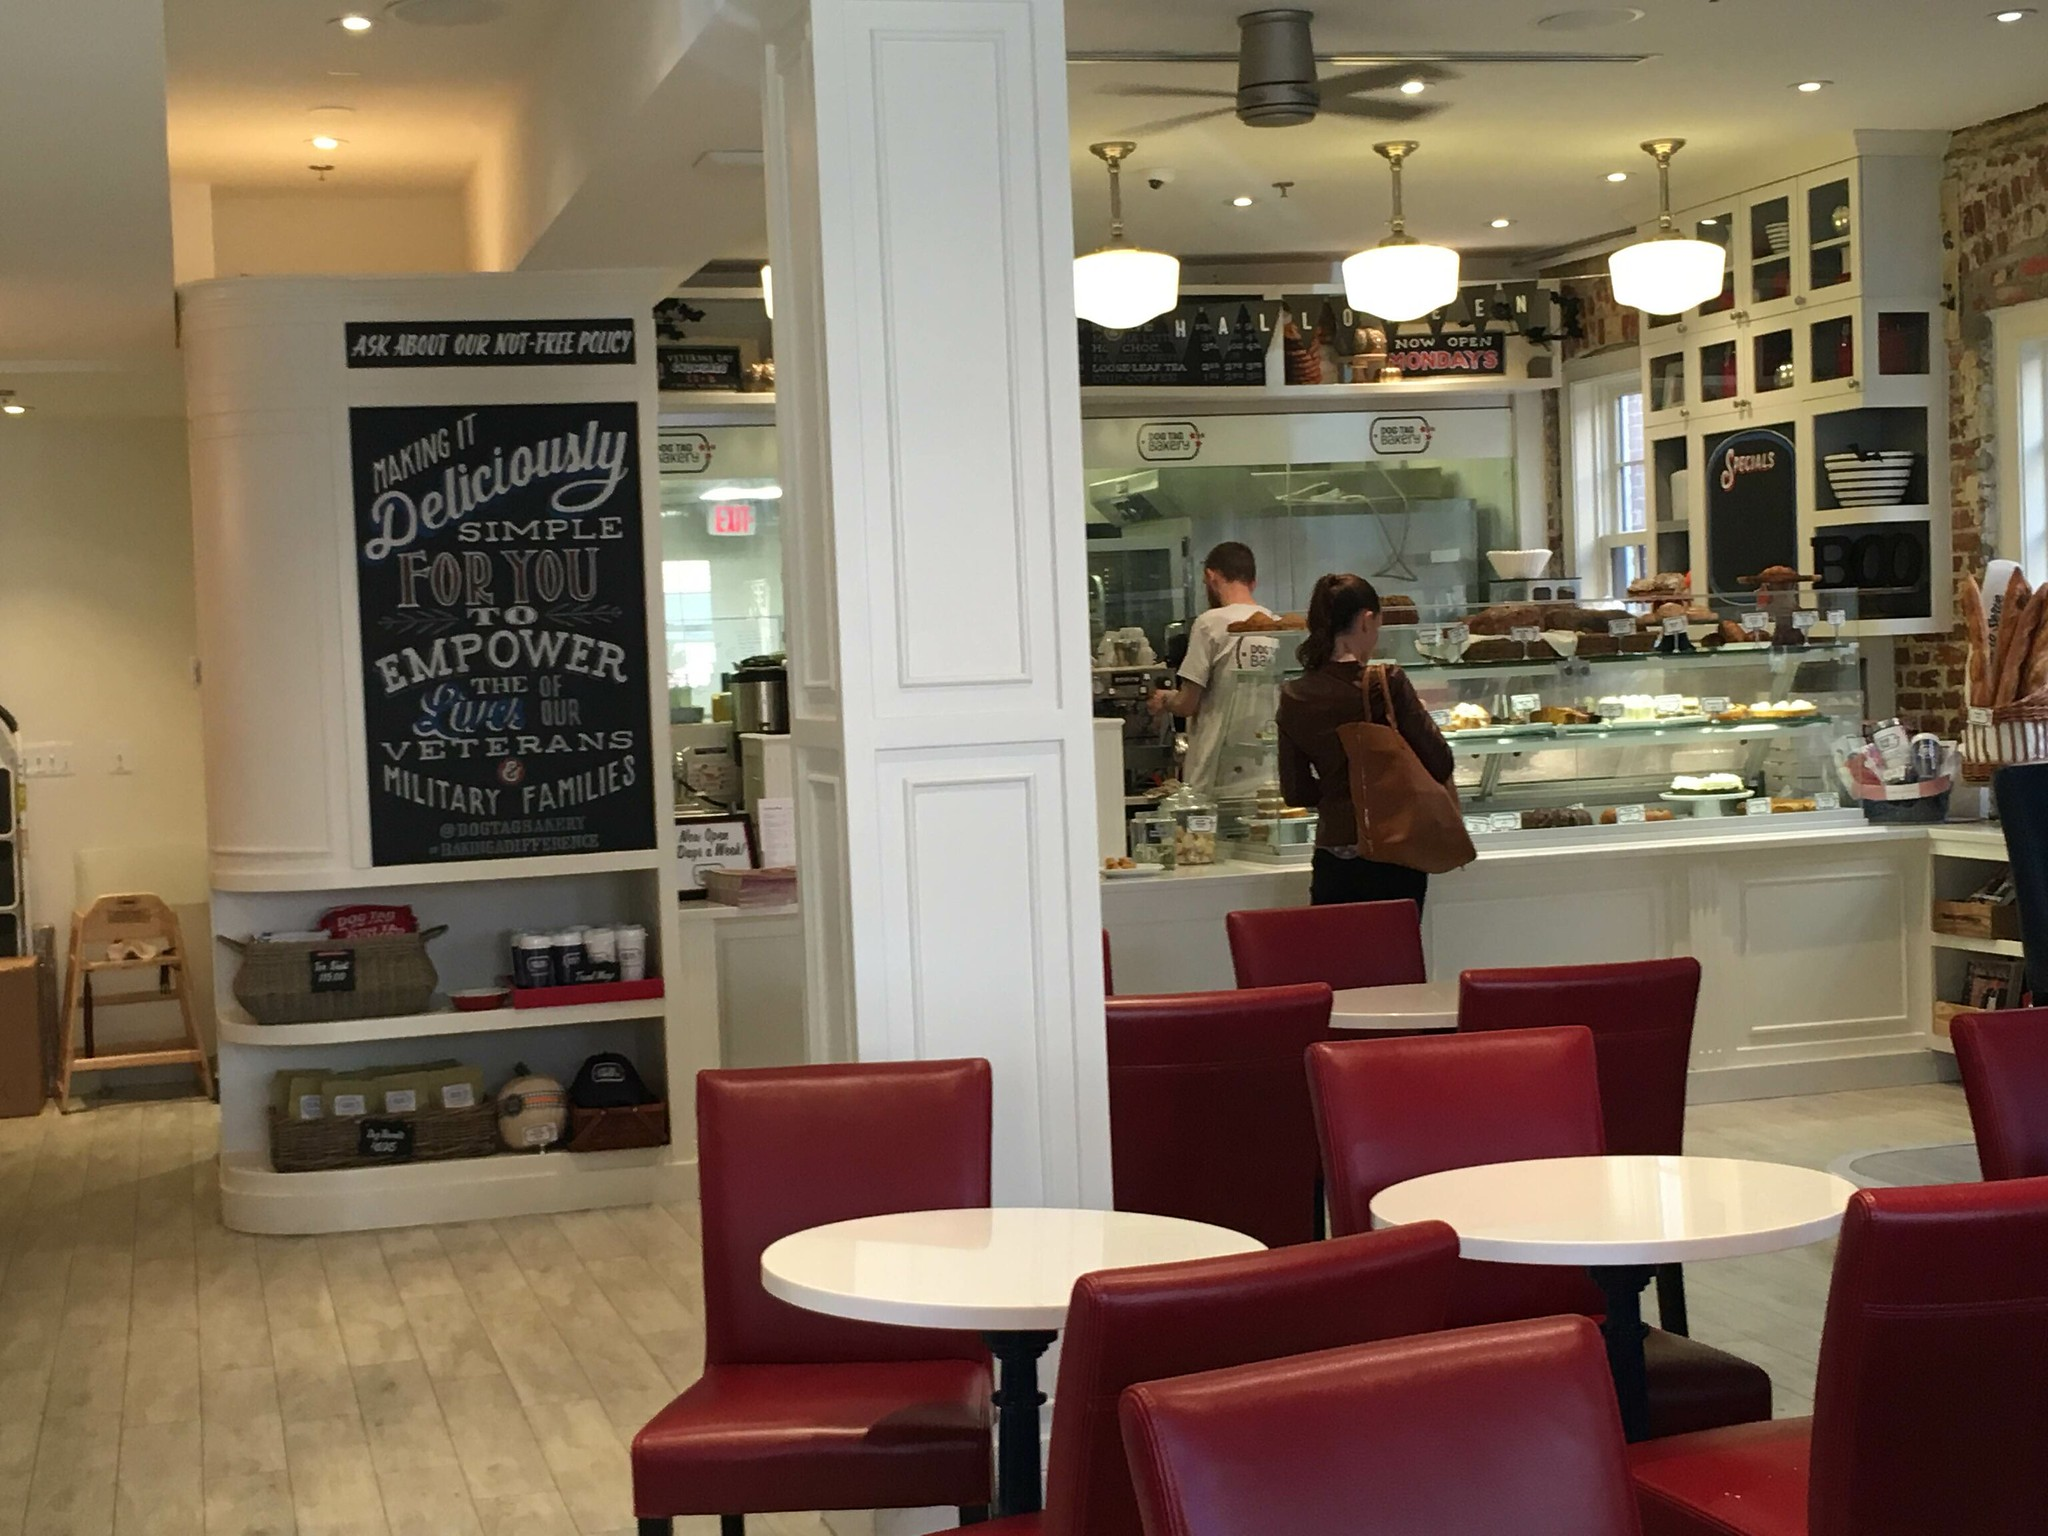 The inside of the bakery. There are white circular tables with red cushioned seats. A woman waits in front of a counter with a baked goods display. An employee works behind the counter.